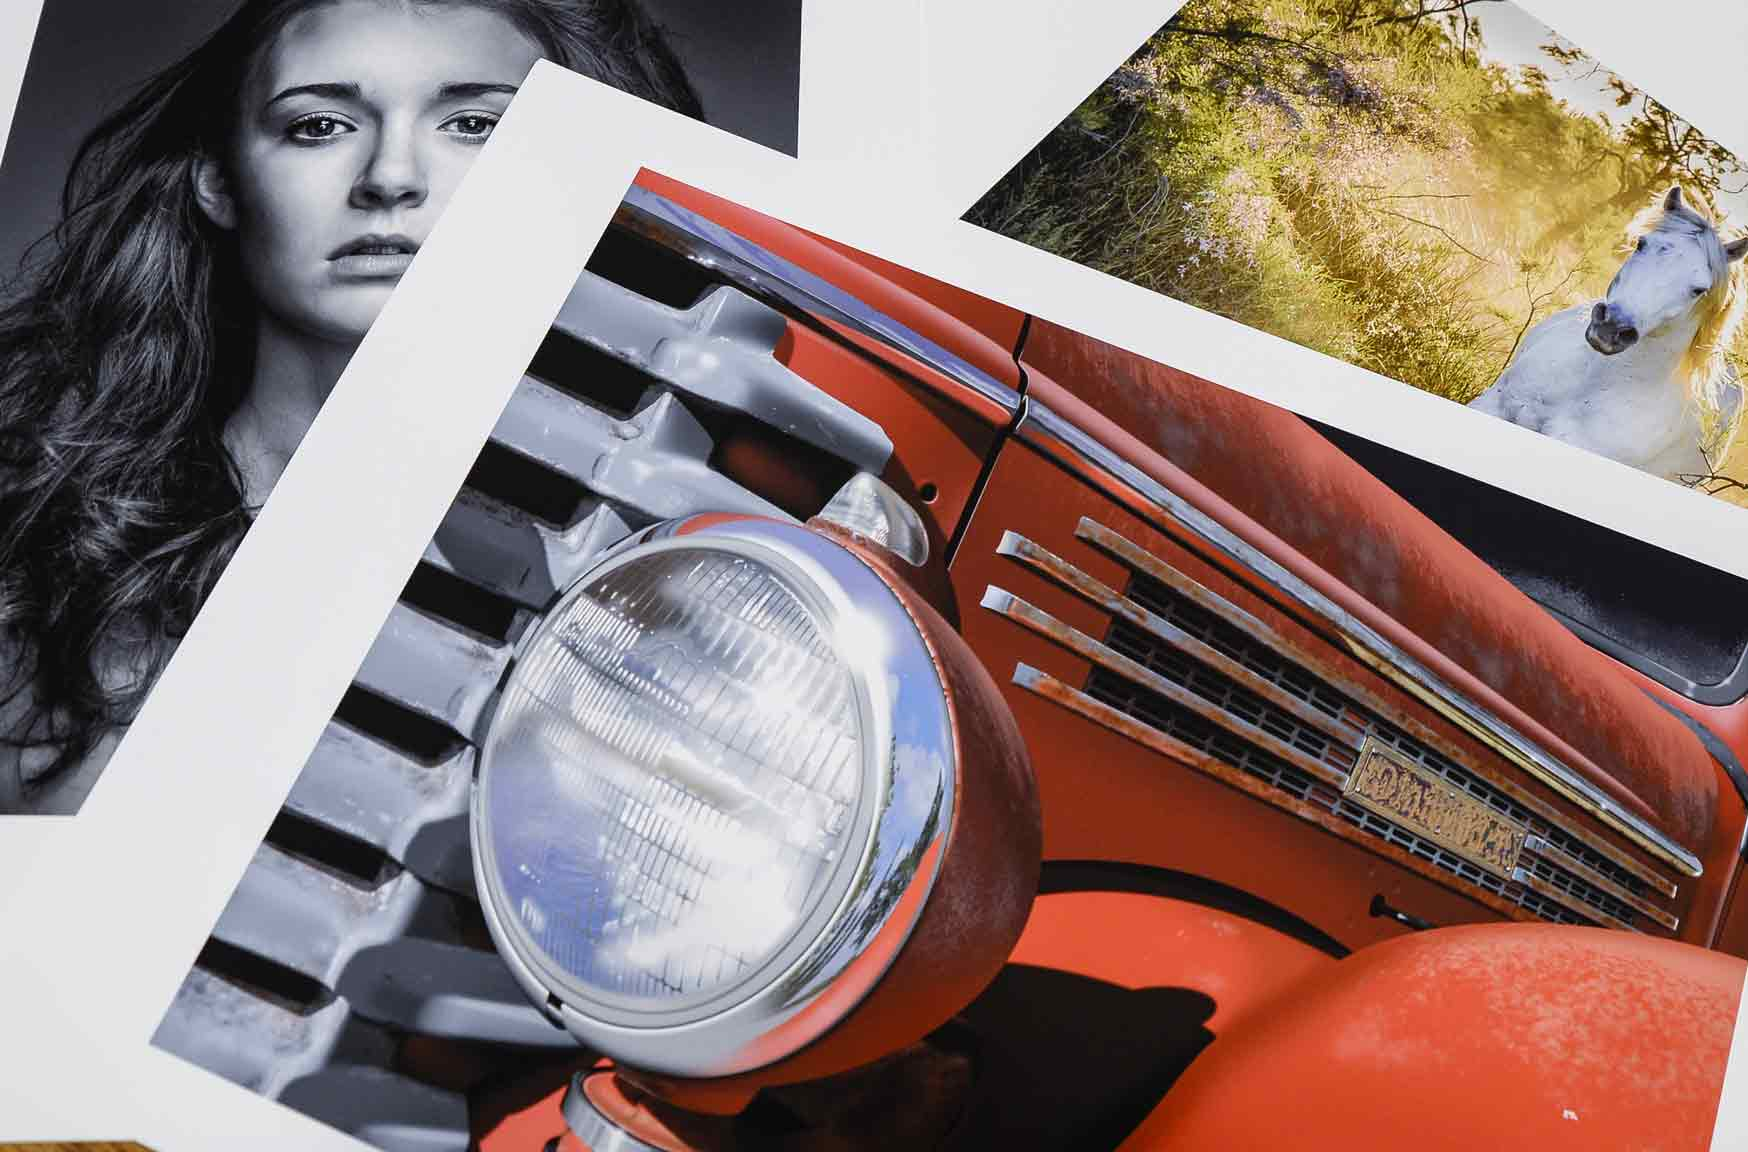 Red River's New Palo Duro Etching Paper is Designed to Emulate the Darkroom Look